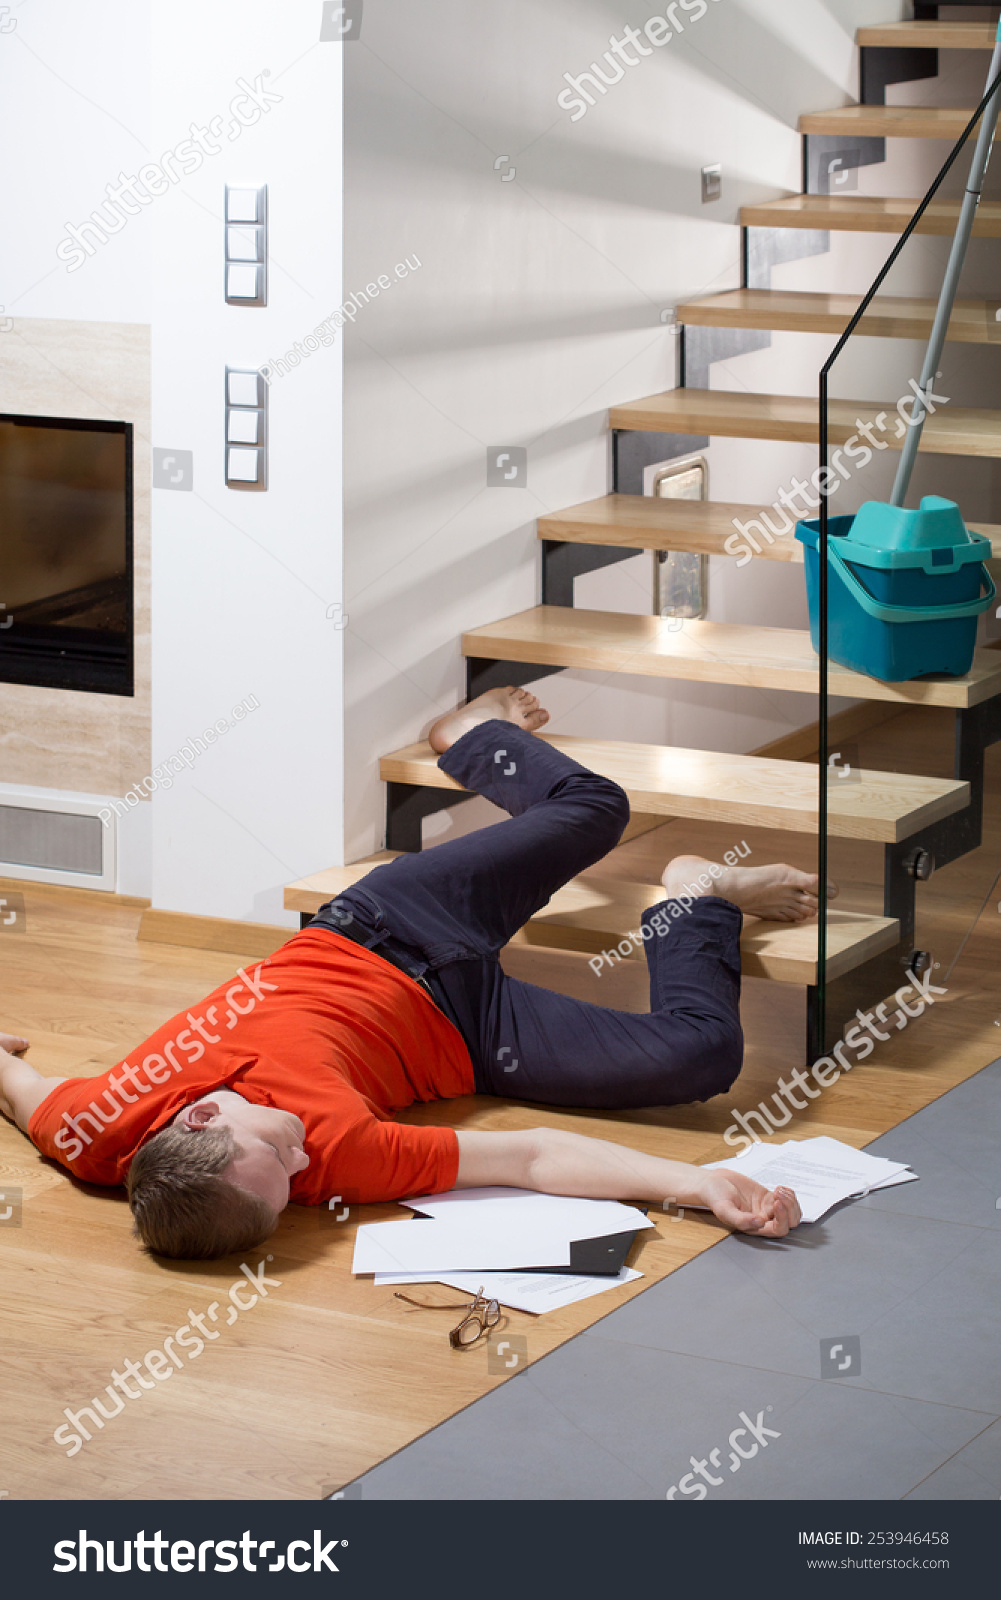 Injured man lying on floor after stock photo 253946458 for Down to the floor